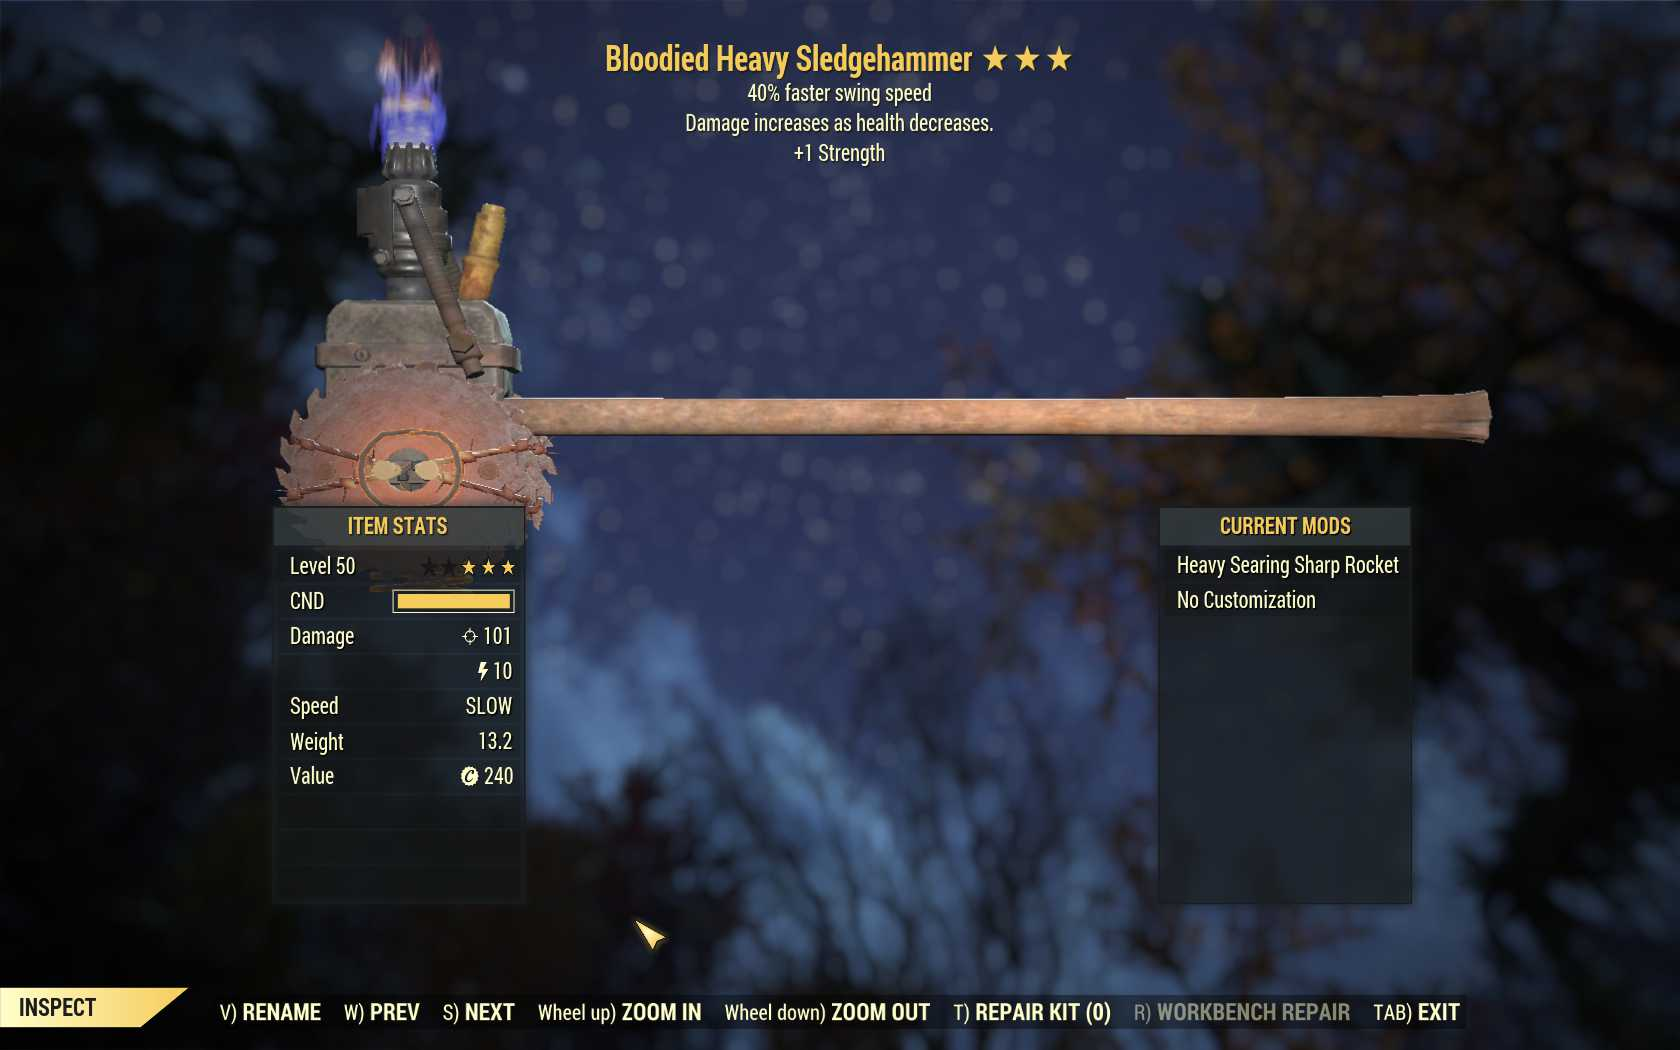 Bloodied Sledgehammer (40% Faster Swing Speed, +1 Strength)